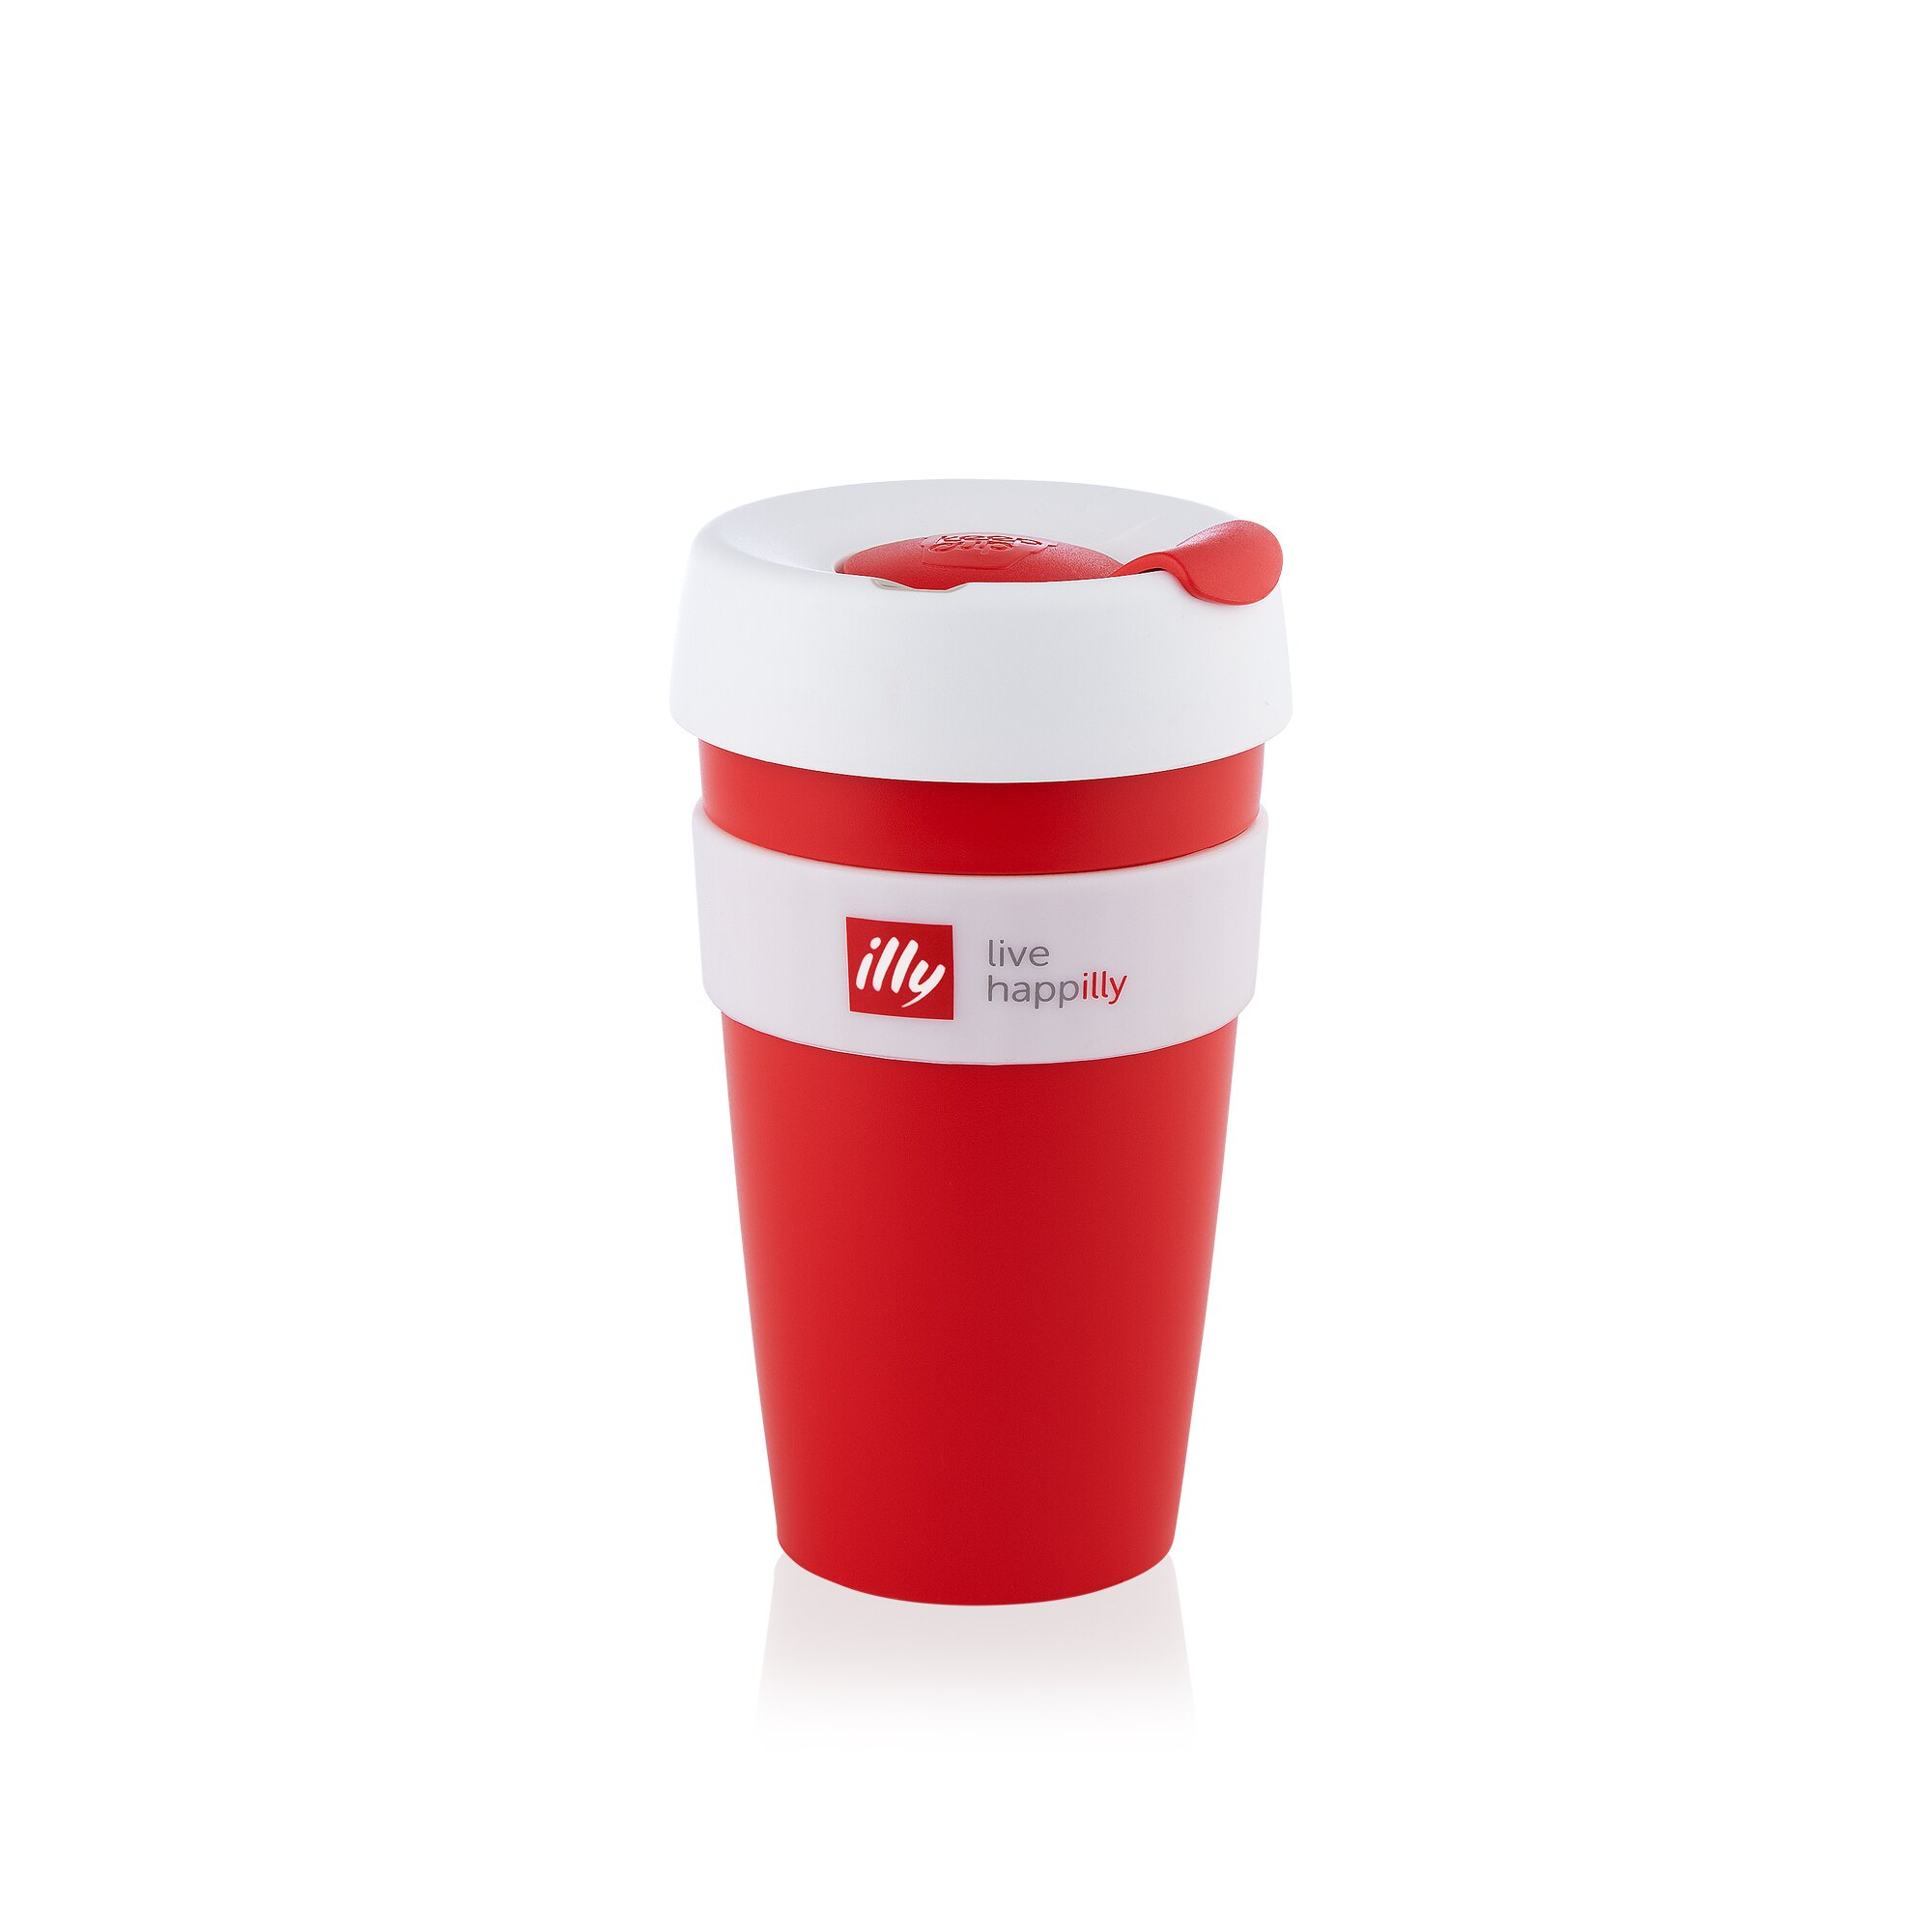 live happilly Red with White Lid KeepCup front view